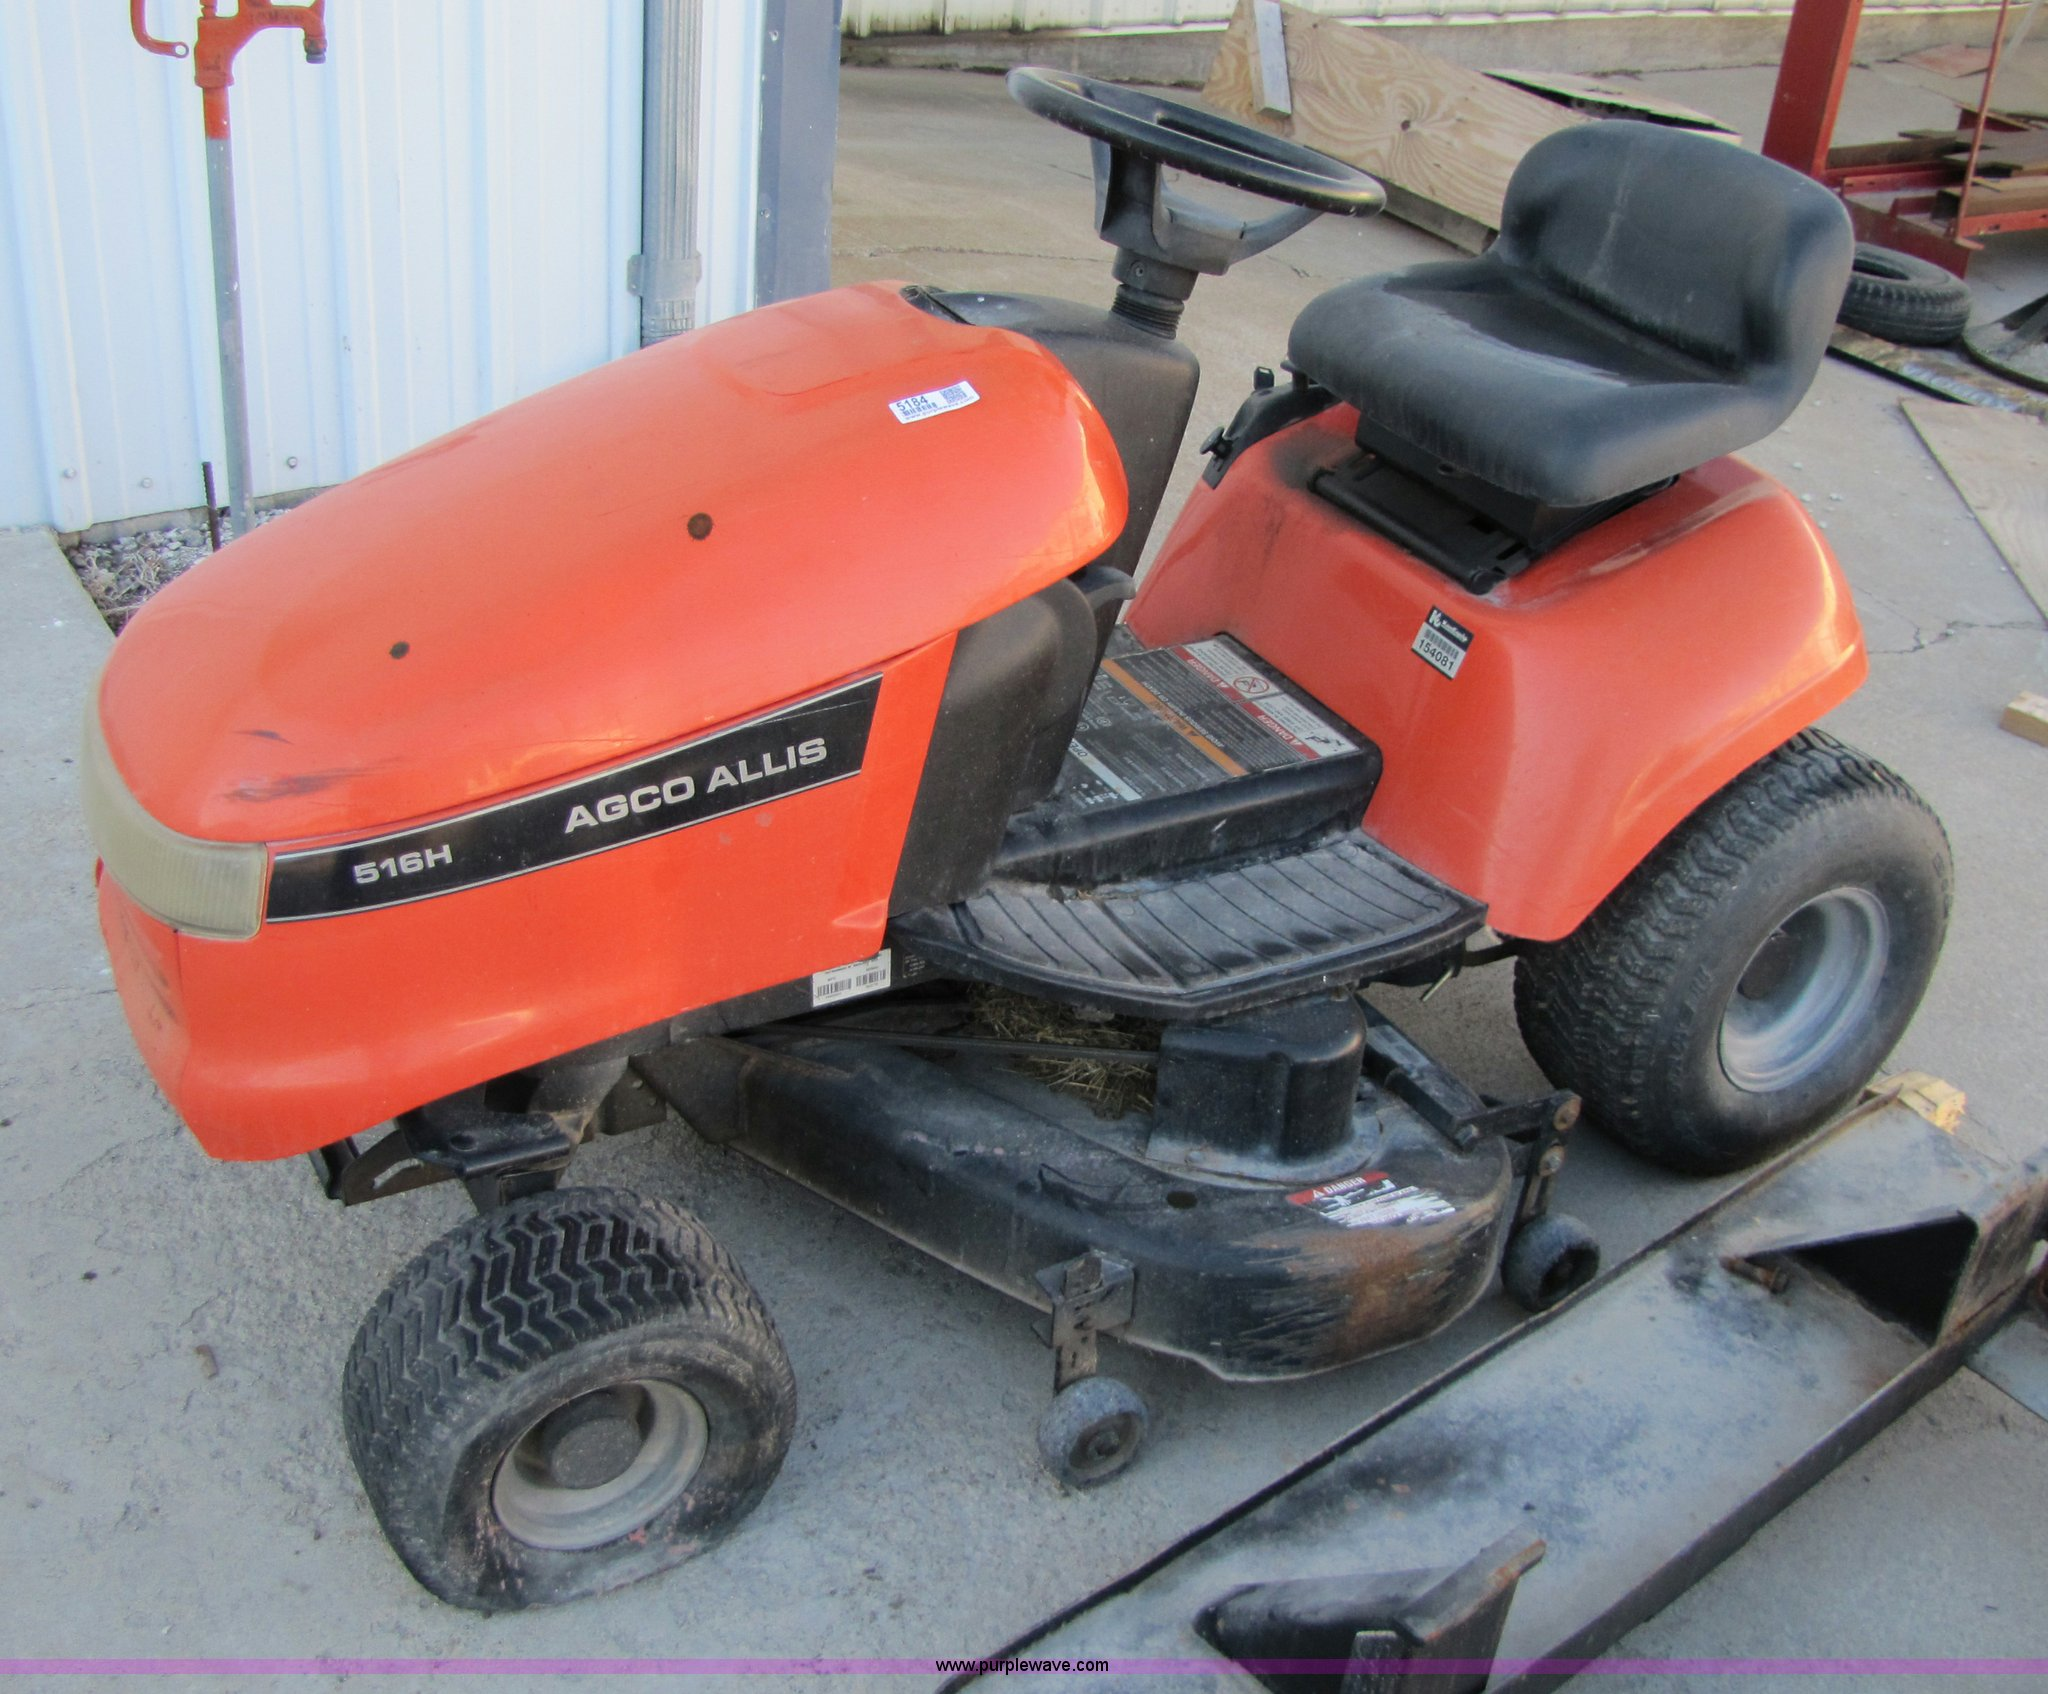 Agco Allis 516h Riding Lawn Mower In Wamego Ks Item 5184 Sold Purple Wave